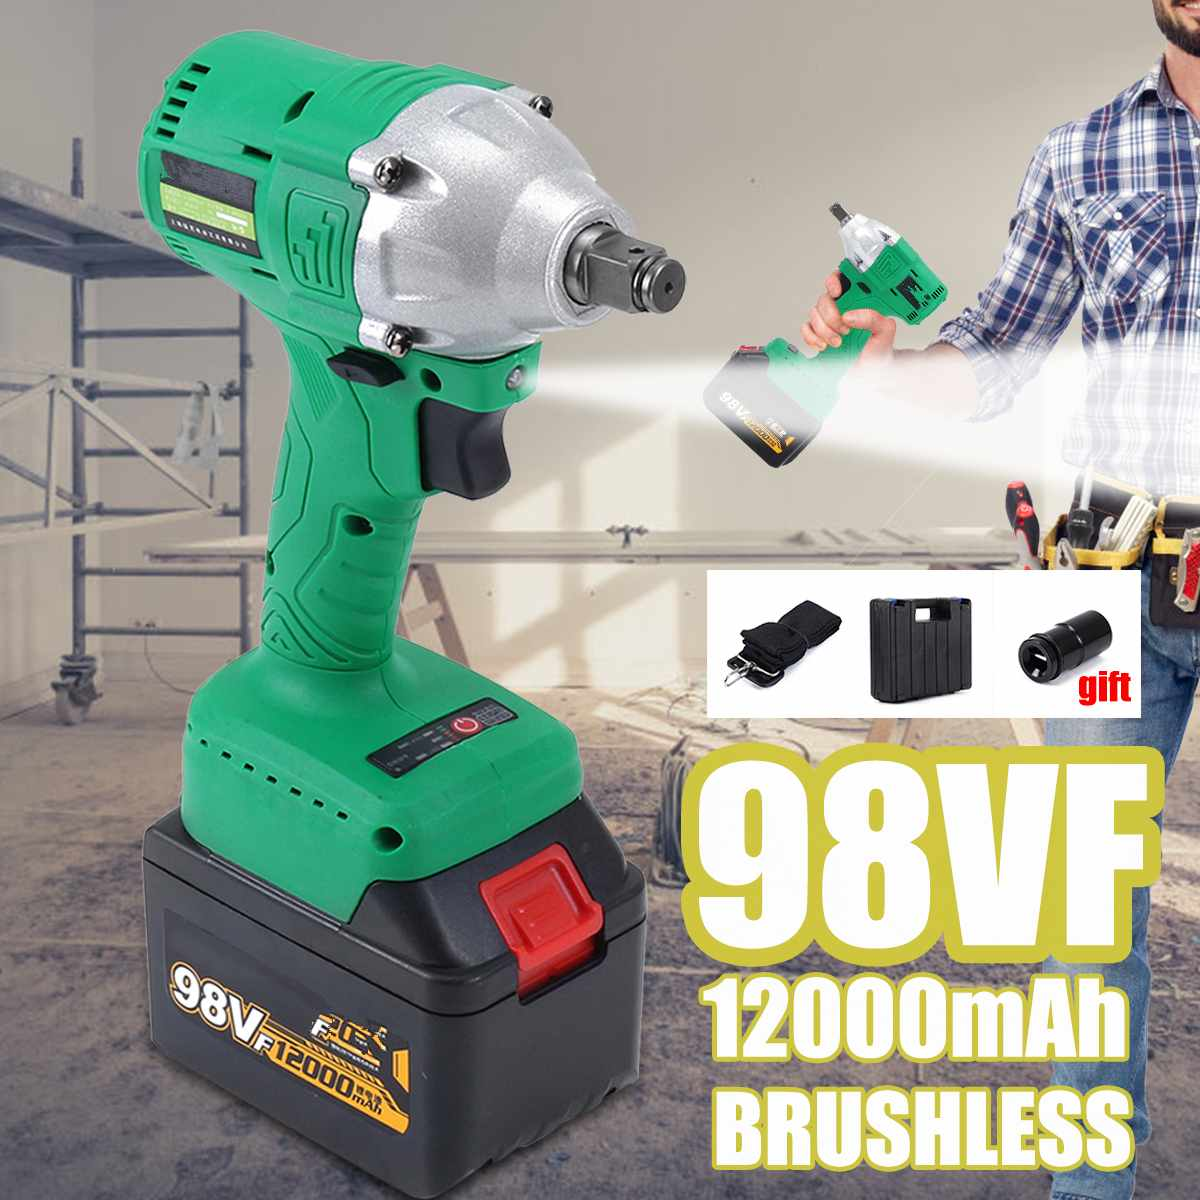 460Nm 220V Cordless Electric Impact Wrench 1/2 Brushless Socket Wrench Screw Driver Auto Car Repair Tool Rechargable Battery460Nm 220V Cordless Electric Impact Wrench 1/2 Brushless Socket Wrench Screw Driver Auto Car Repair Tool Rechargable Battery